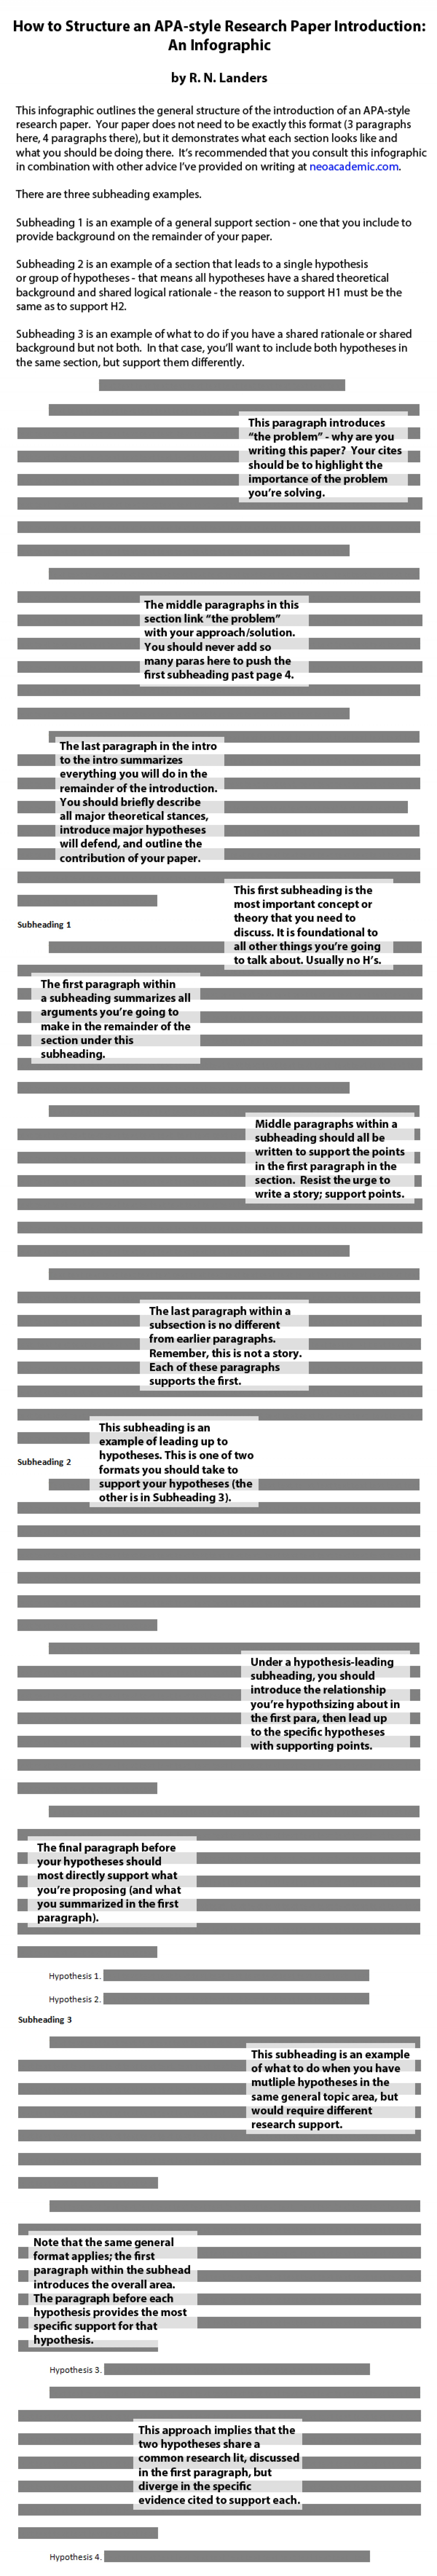 007 Intro Infographic2 Research Paper Writingn Introduction To Top Writing An A The Scientific Middle School Paragraph For 1920